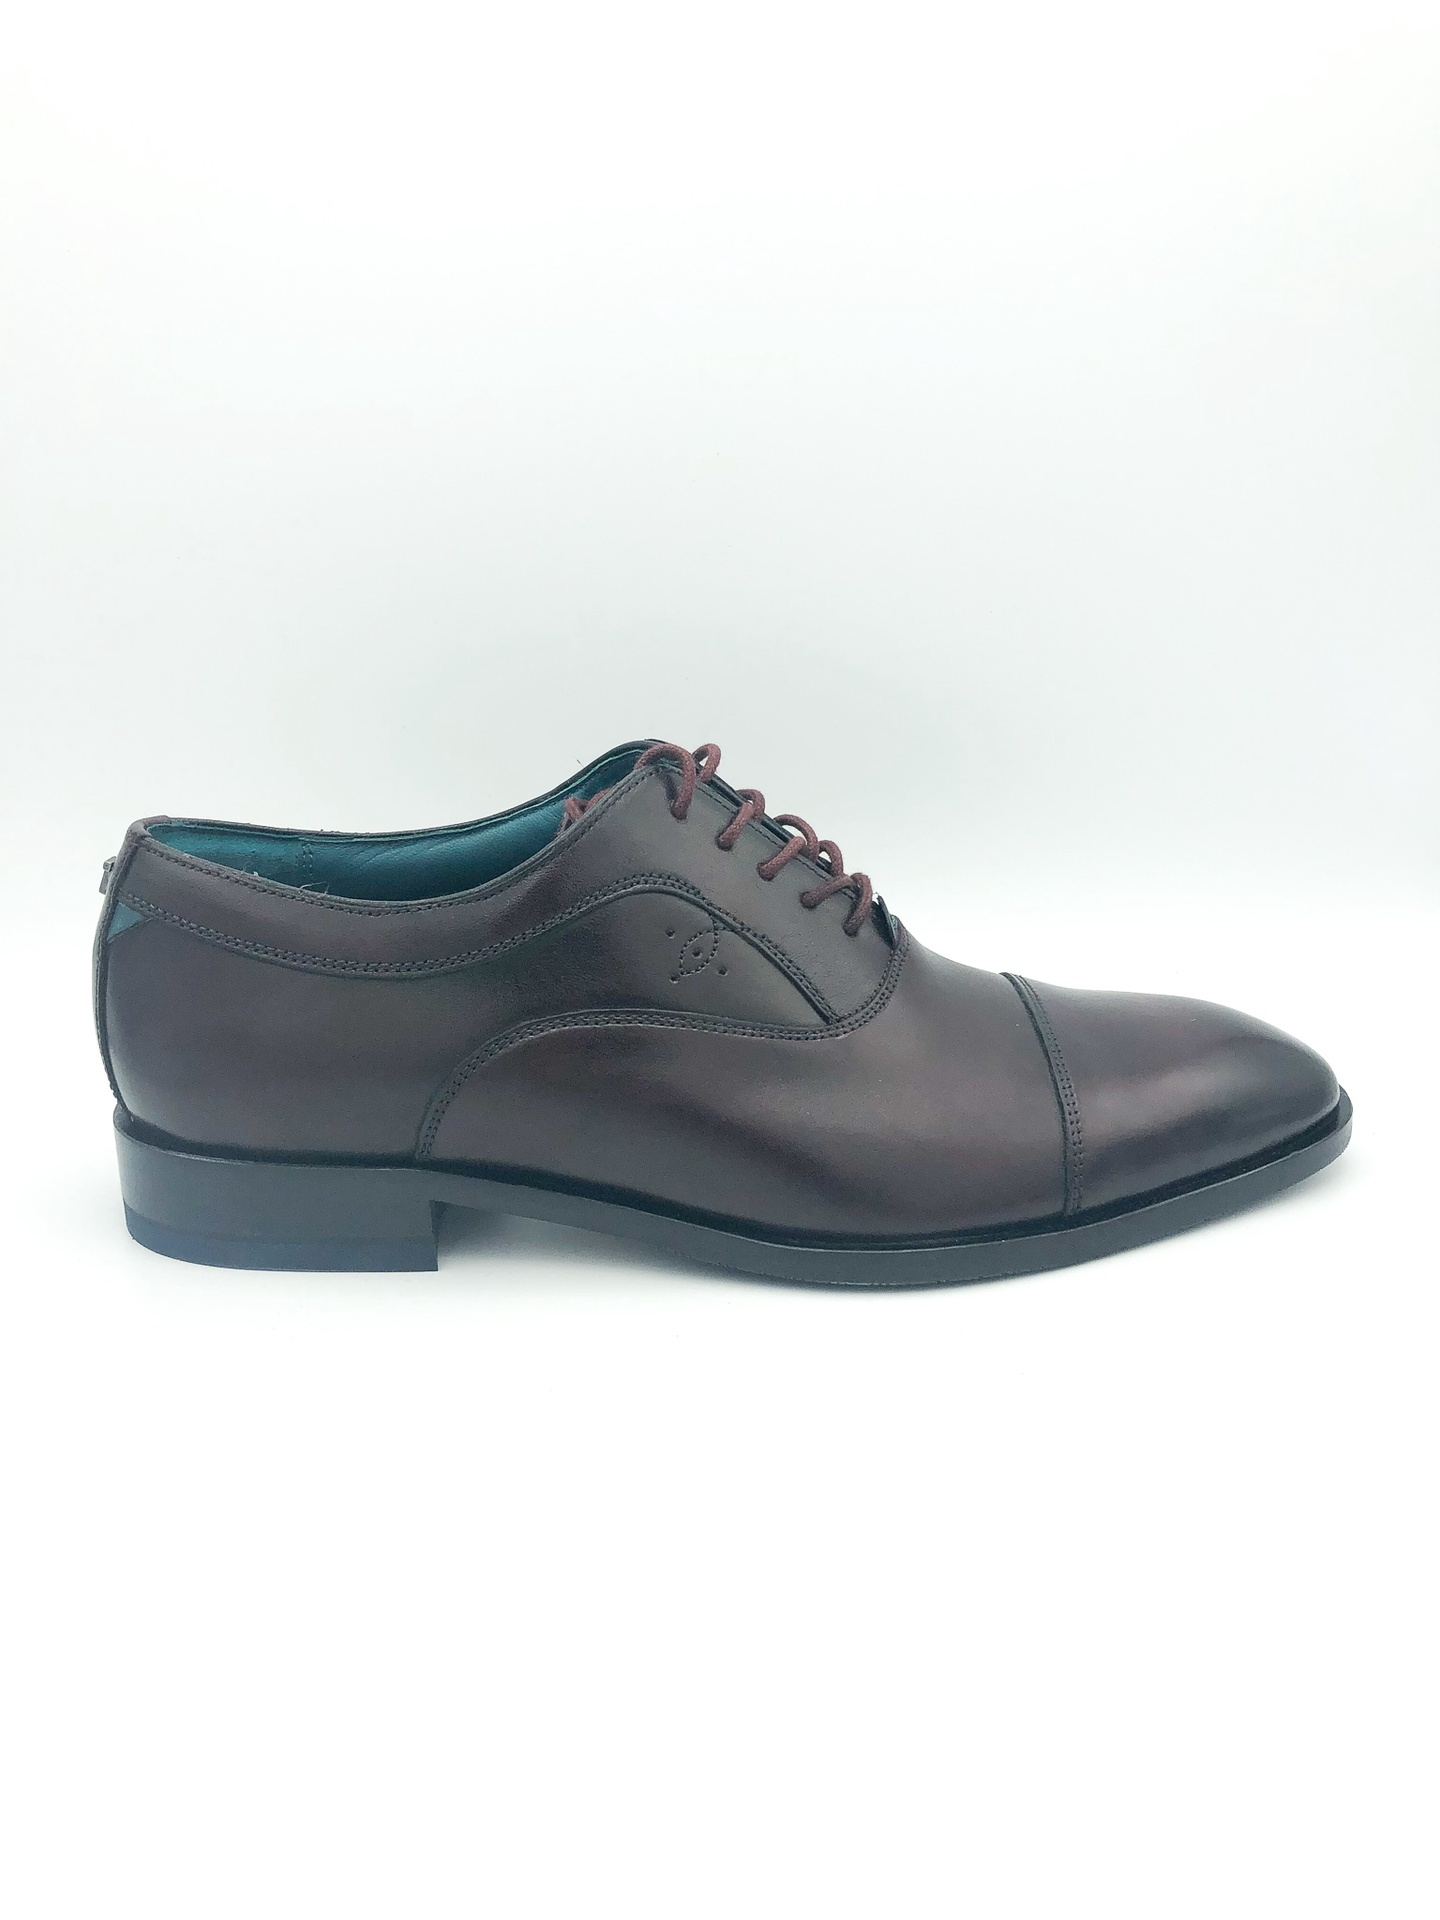 TED BAKER-FUALLY IN DARK RED